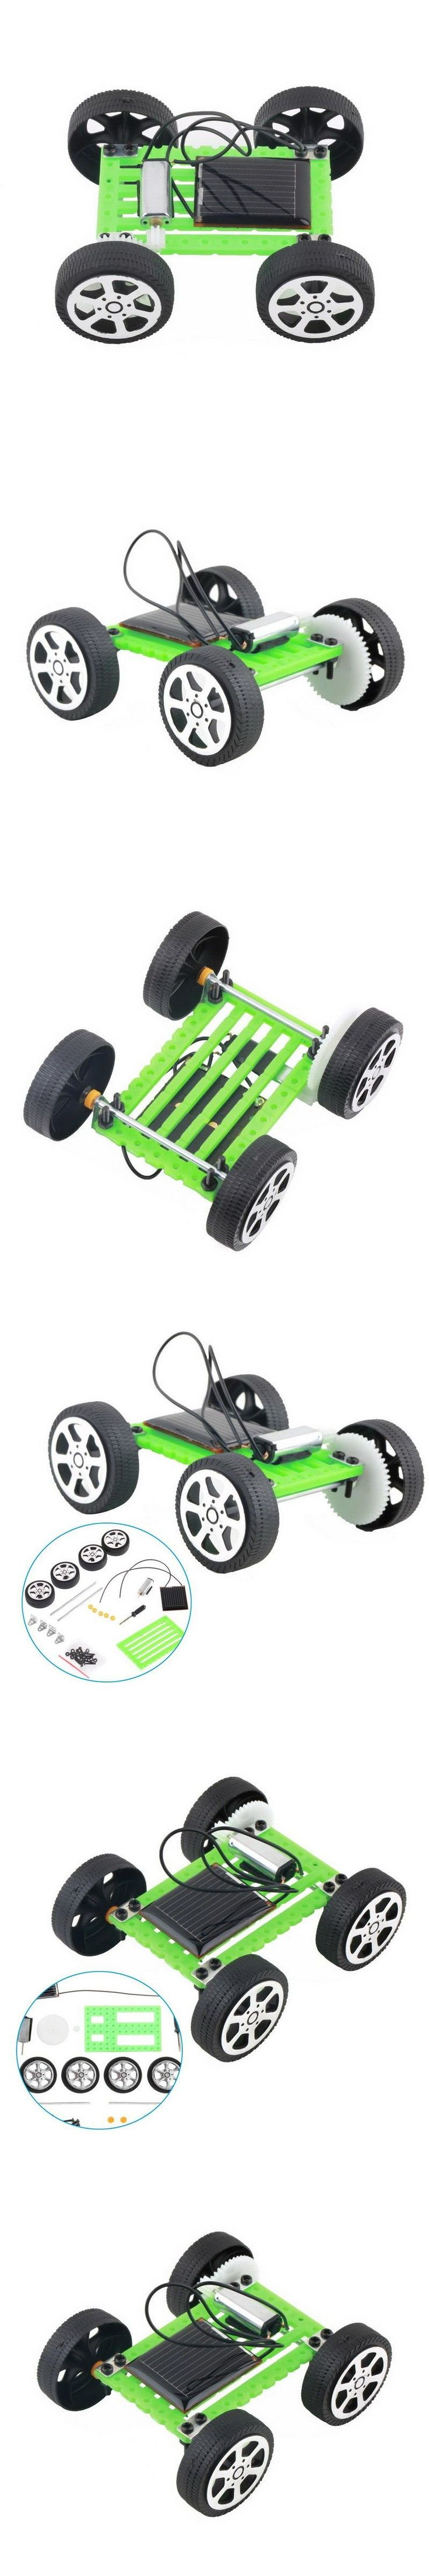 diy solar toy car assemble solar vehicle mini solar energy powdered toys racer child kid solar